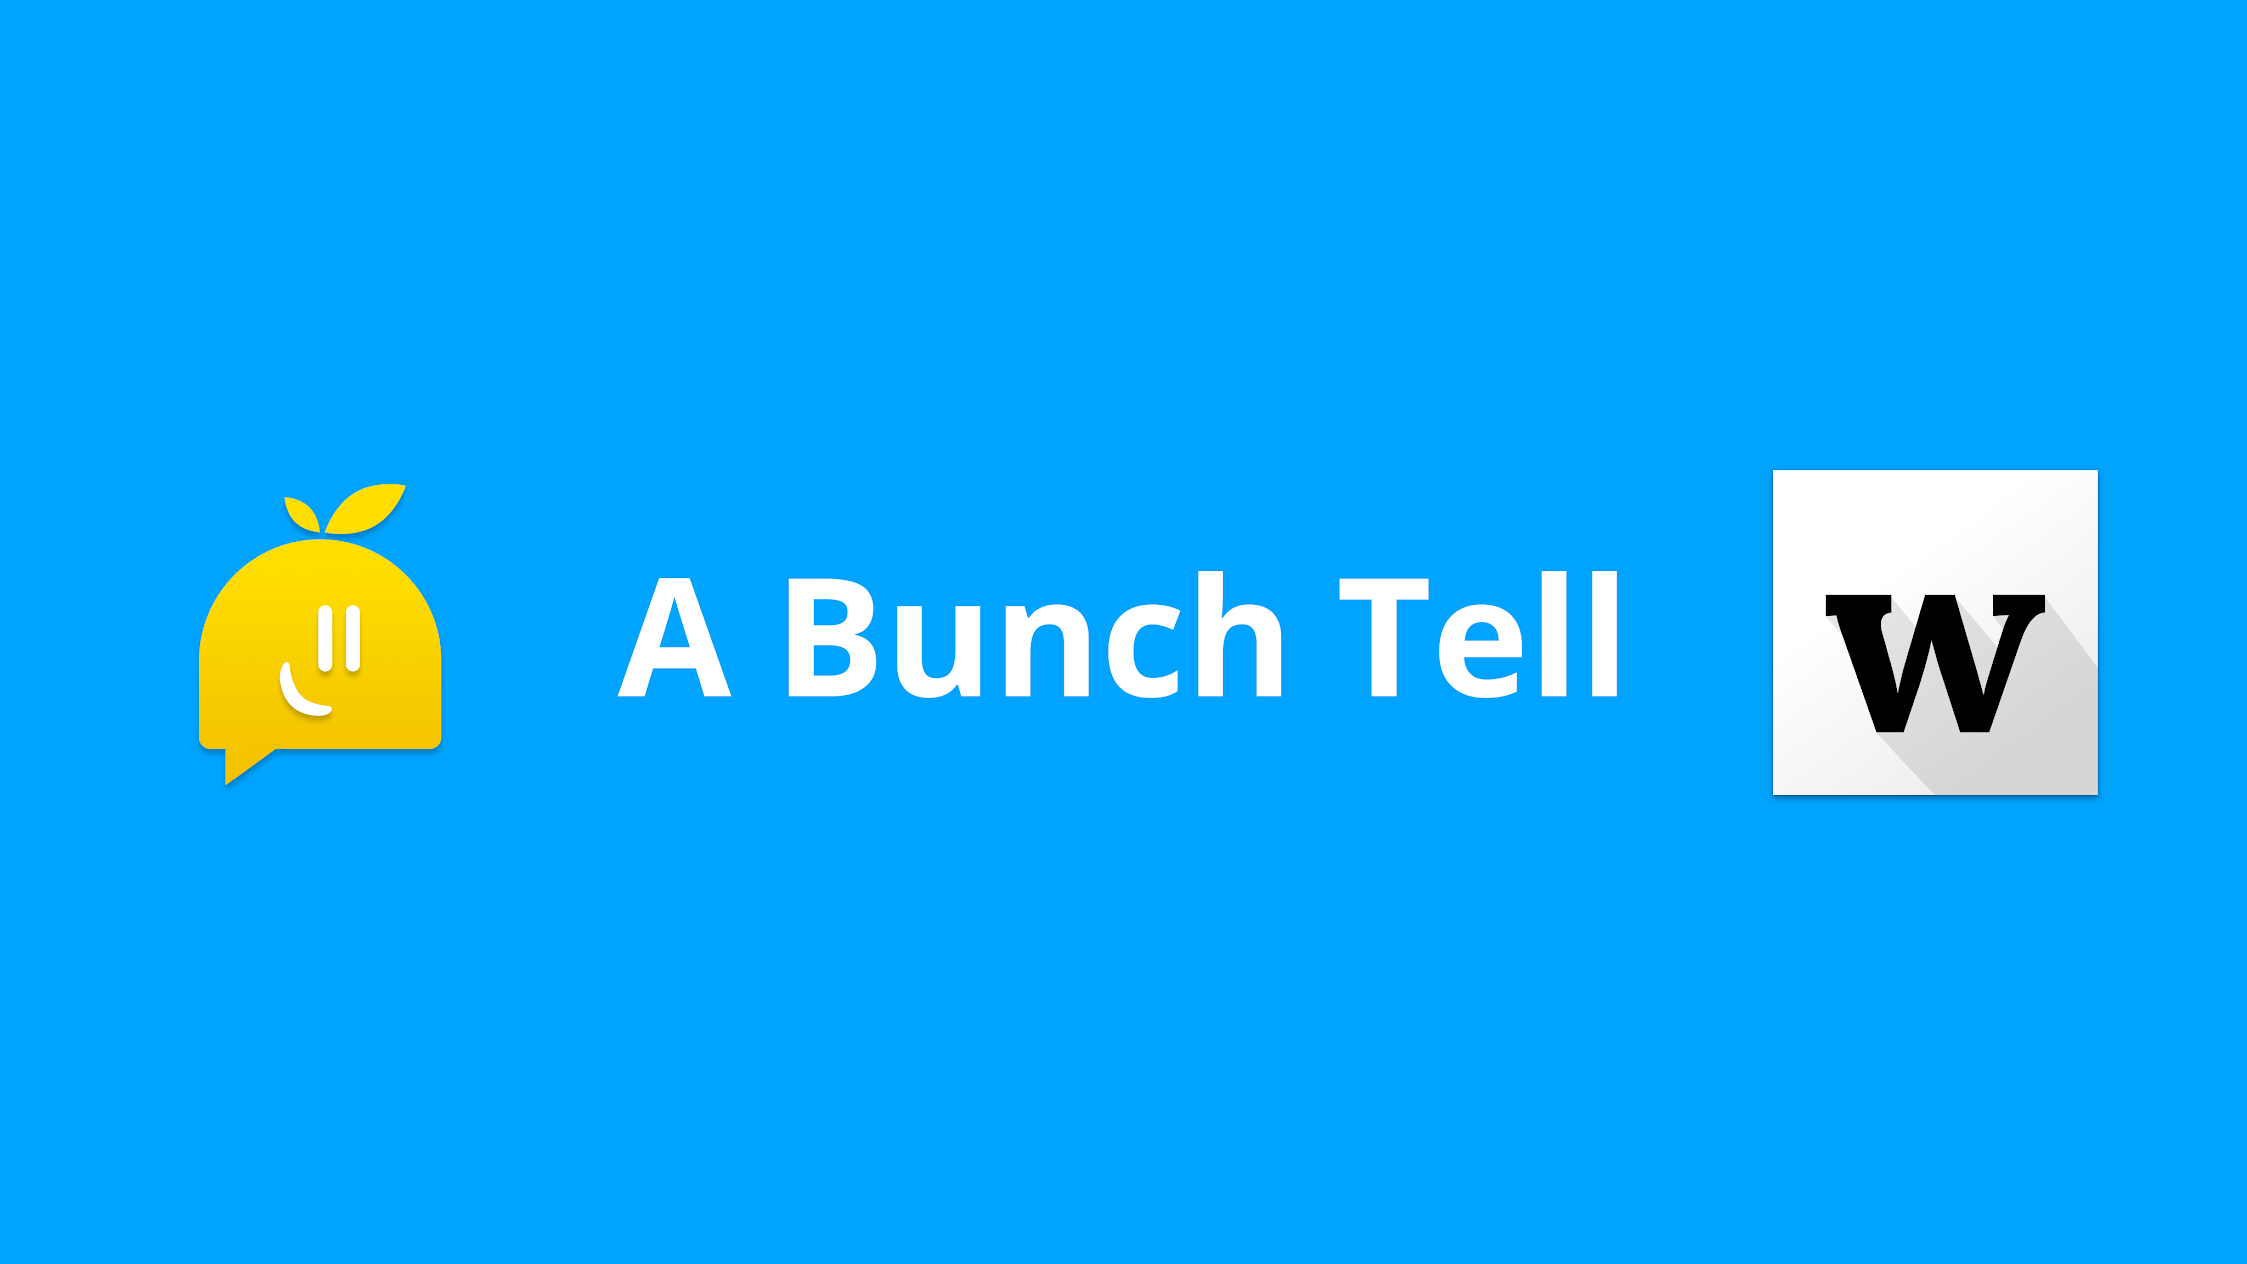 A Bunch Tell